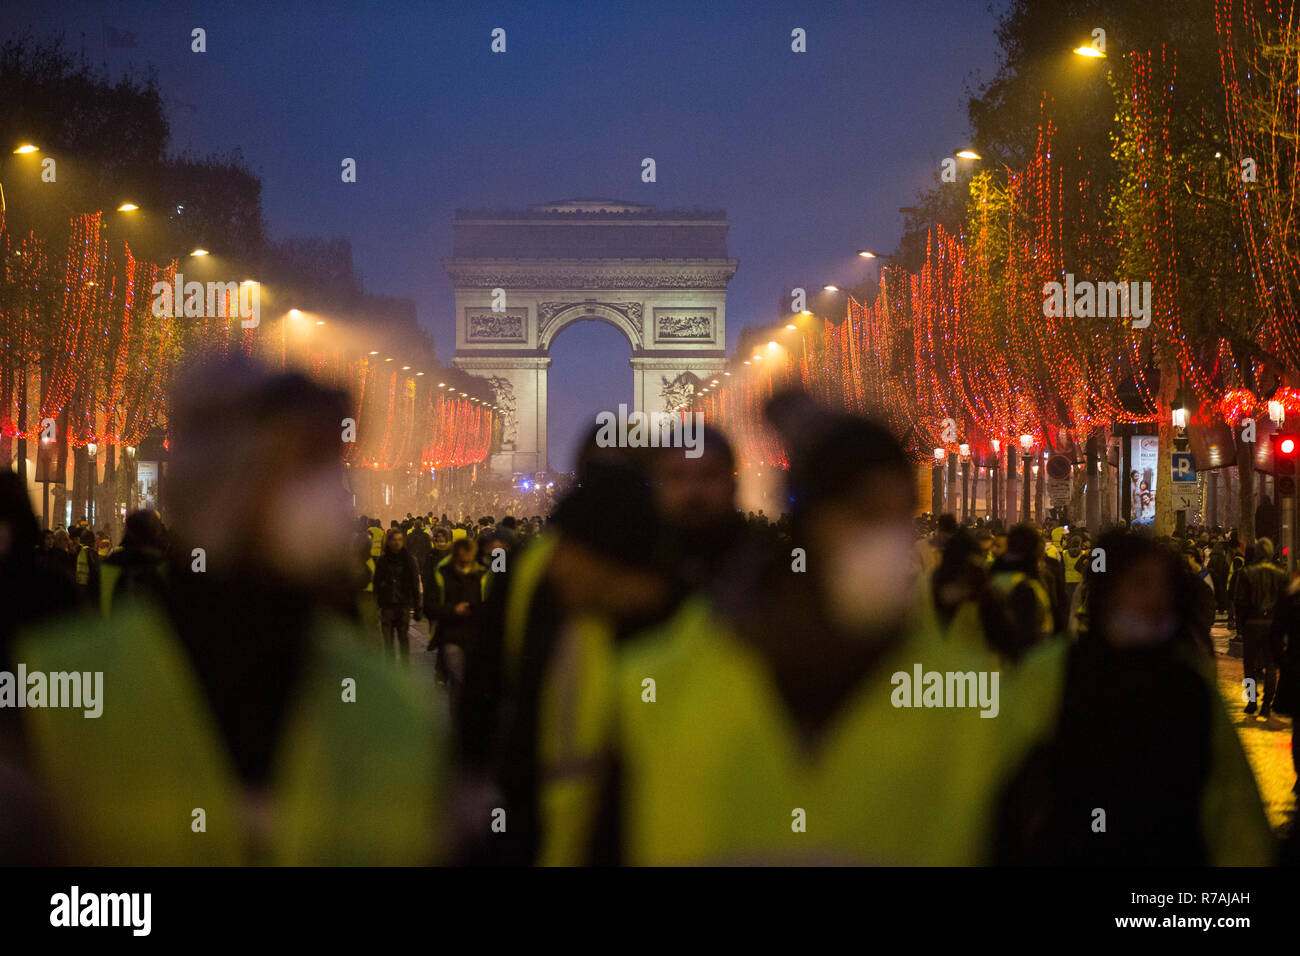 Paris, France. 8th Dec 2018. Protesters seen walking peacefully on the Champs-Elysées during a 'Yellow Vest' protest in Paris. Without any political affiliation, the 'Yellow Vest' movement rallies in various cities in France this saturday against taxes and rising fuel prices. Credit: SOPA Images Limited/Alamy Live News Stock Photo